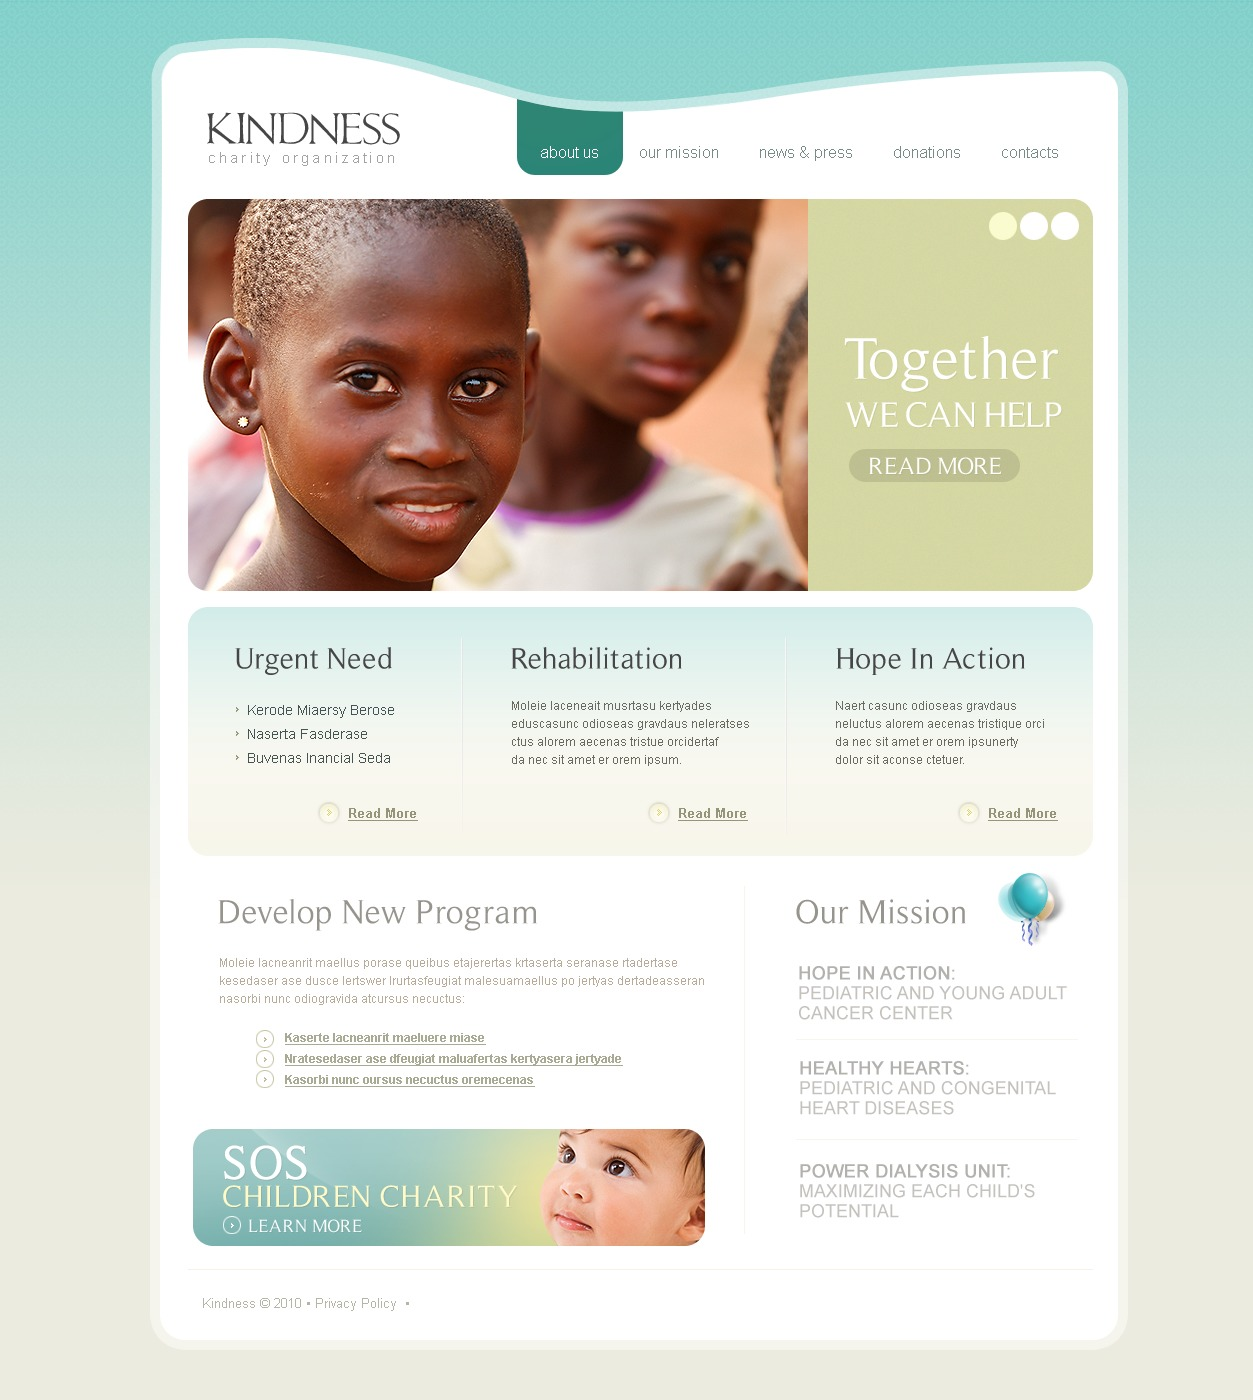 The Children Charity PSD Design 54342, one of the best PSD templates of its kind (charity, wide, jquery), also known as children charity PSD template, organization PSD template, children PSD template, indigent PSD template, donation PSD template, adoption PSD template, relief PSD template, fund PSD template, pecuniary PSD template, aid PSD template, non-profit PSD template, mission PSD template, team PSD template, work PSD template, department PSD template, work PSD template, project PSD template, children PSD template, events PSD template, partner and related with children charity, organization, children, indigent, donation, adoption, relief, fund, pecuniary, aid, non-profit, mission, team, work, department, work, project, children, events, partner, etc.